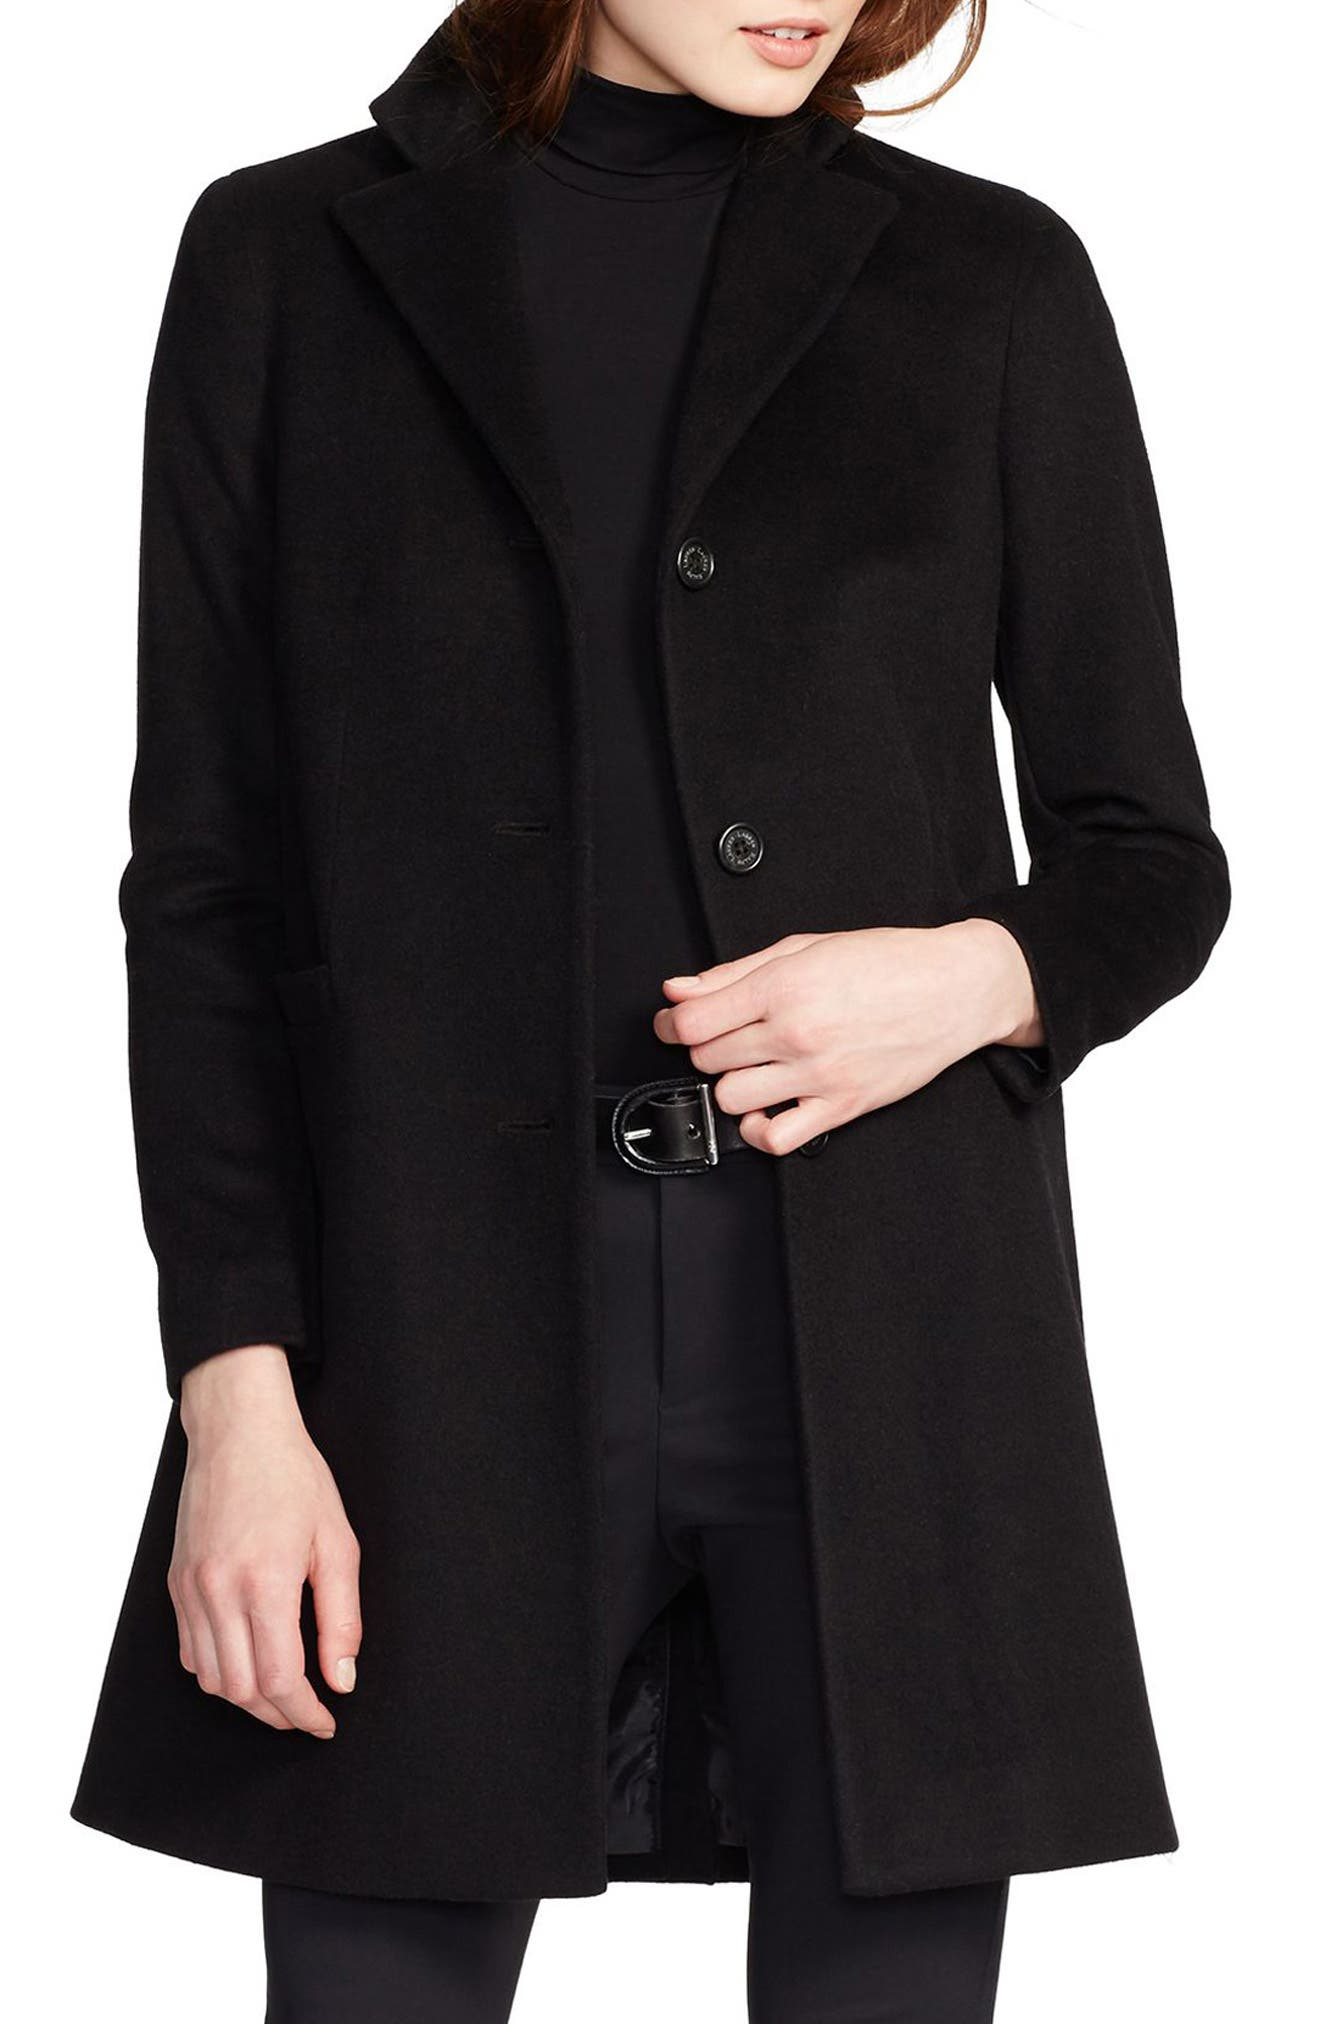 wool coats for petites